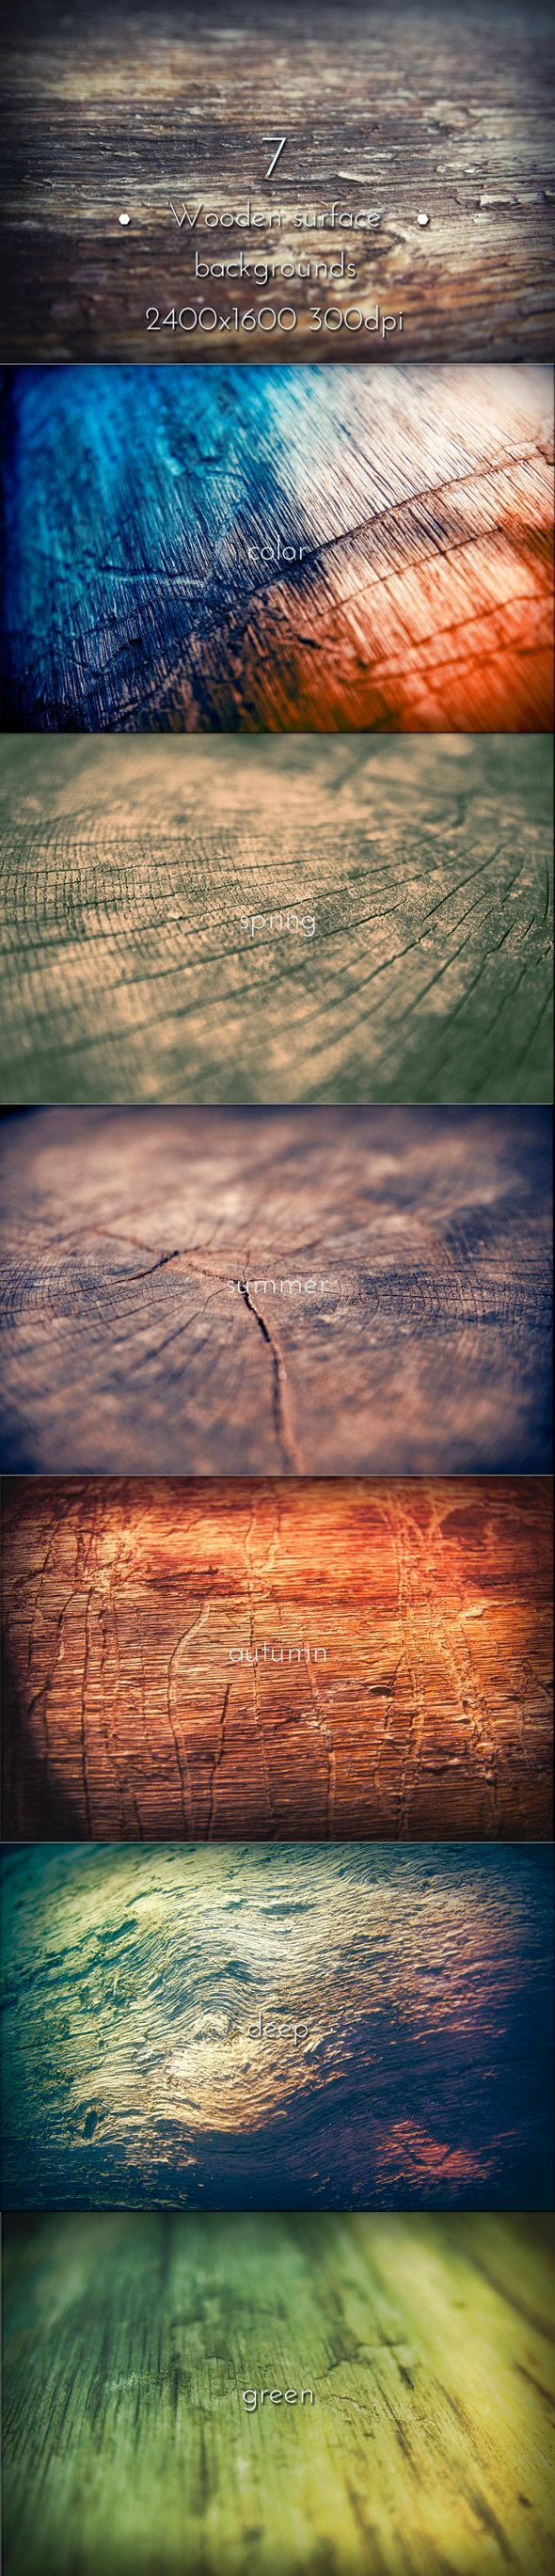 Wooden surface collection backgrounds. 7 hi-res JPG images. 2400×1600, 300 DPI. #graphicriver #wood